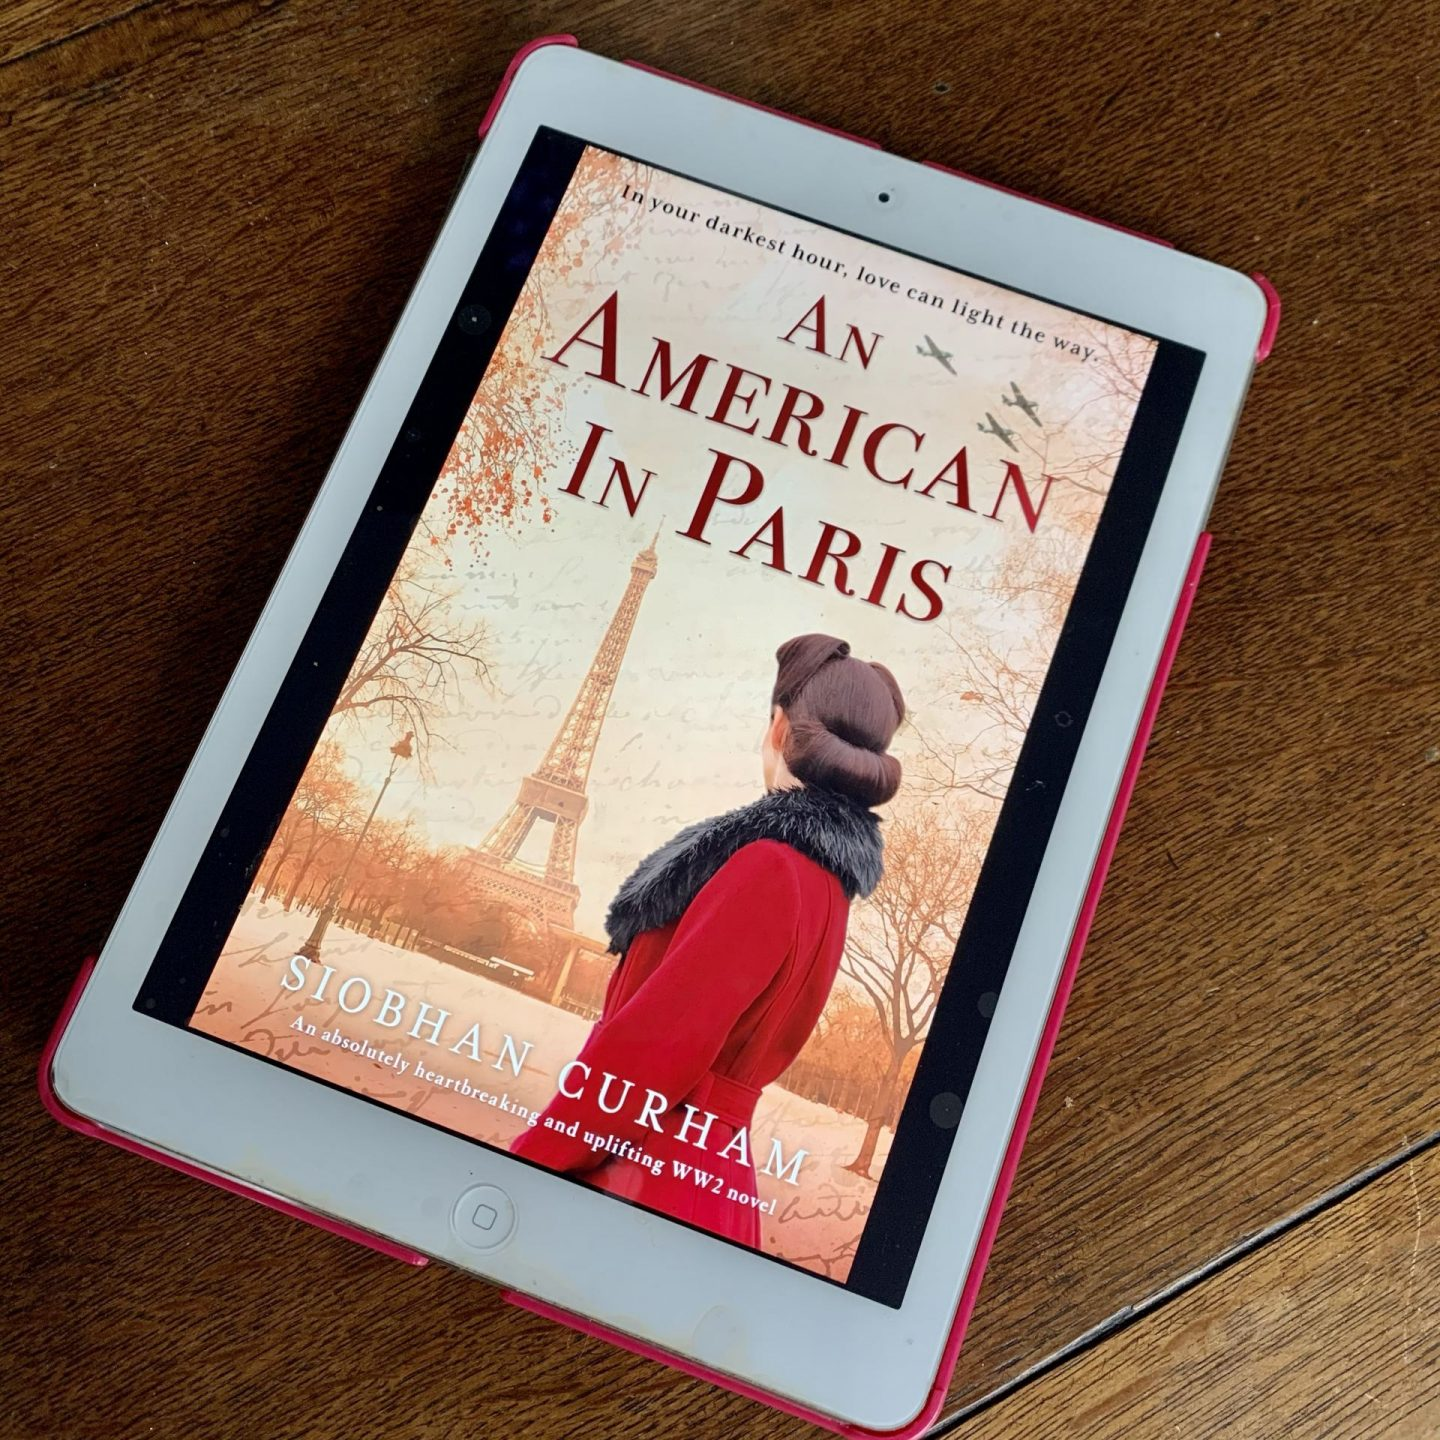 An American in Paris; a poignant wartime story